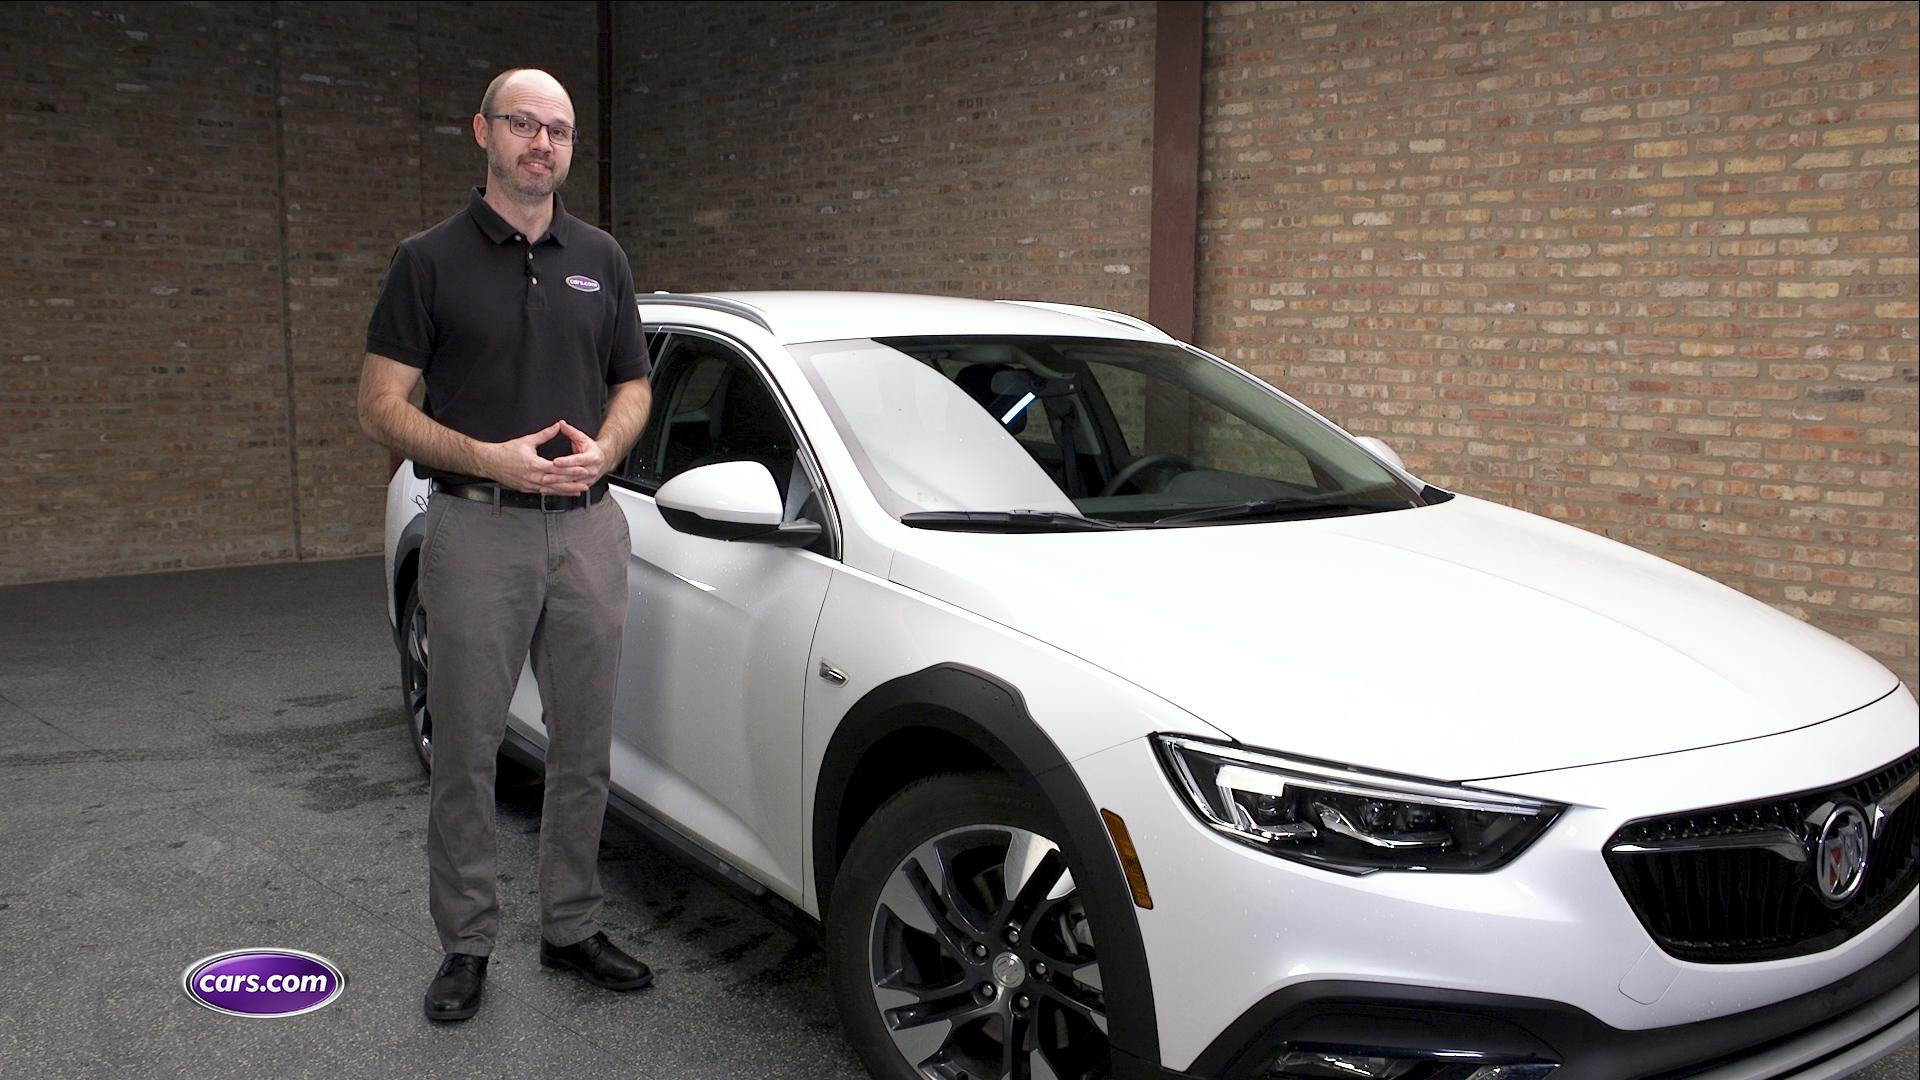 Video: 2018 Buick Regal TourX: 5 Ways It's Better Than an SUV — Cars.com